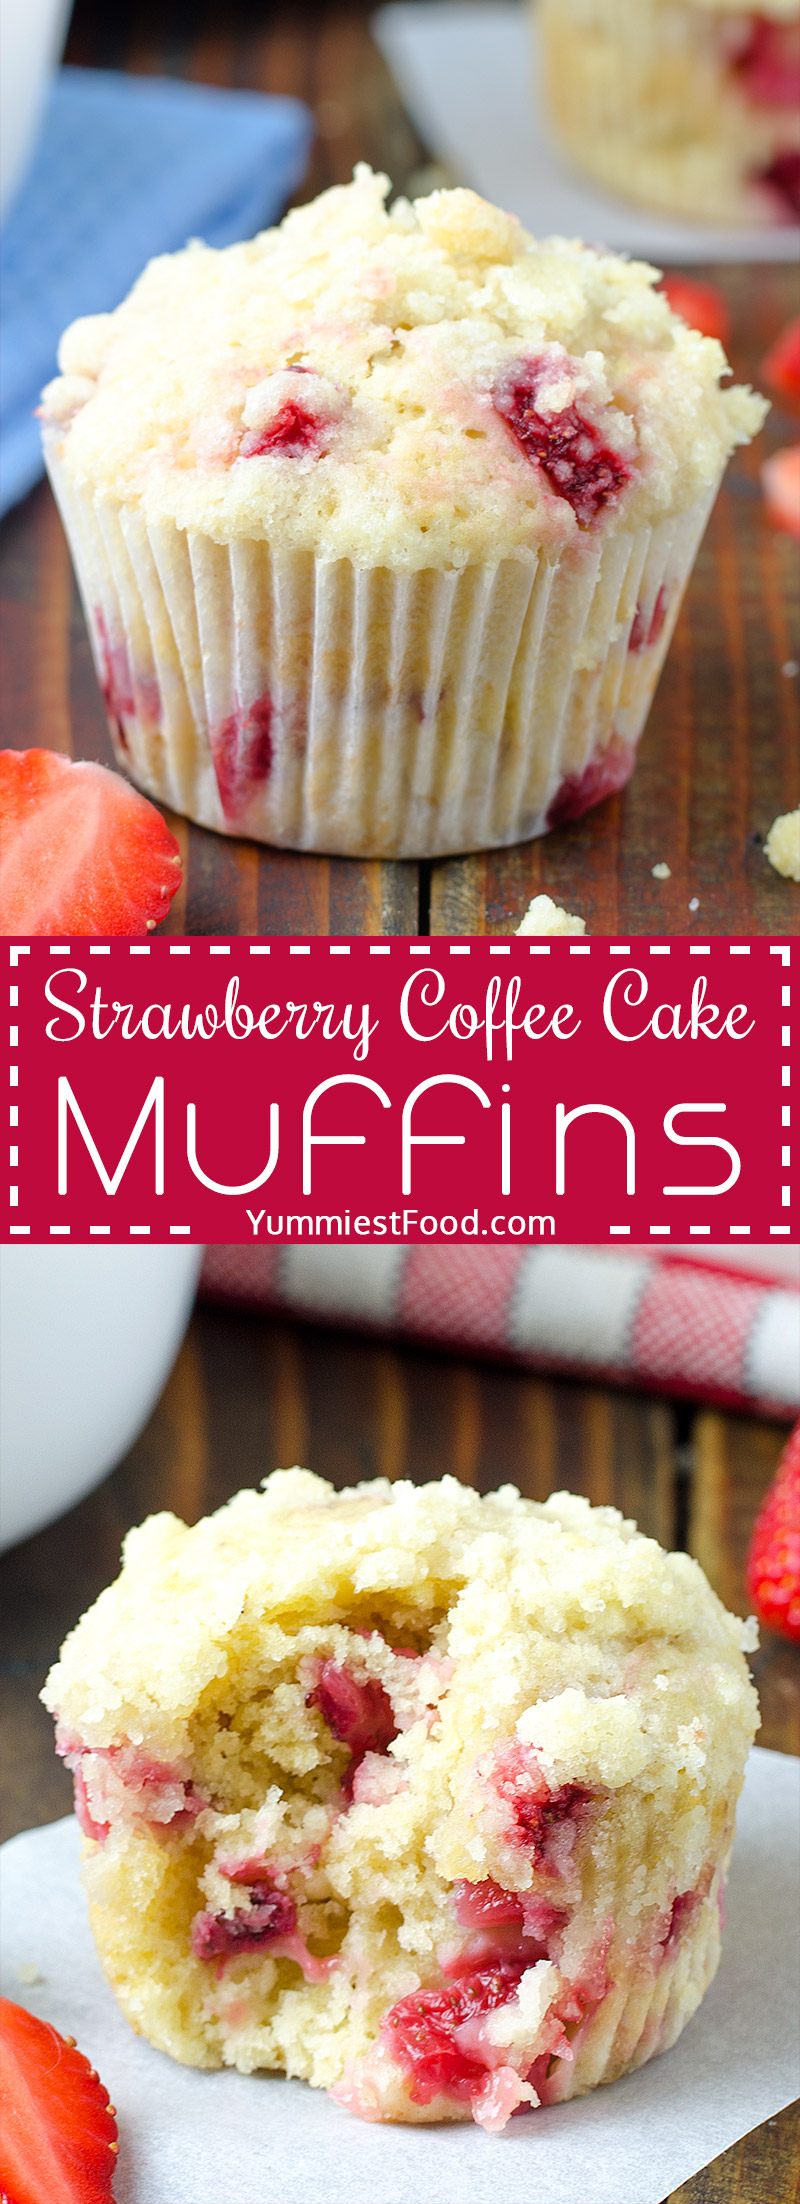 Easy and delicious Strawberry Coffee Cake Muffins, the perfect muffins to make during strawberry season